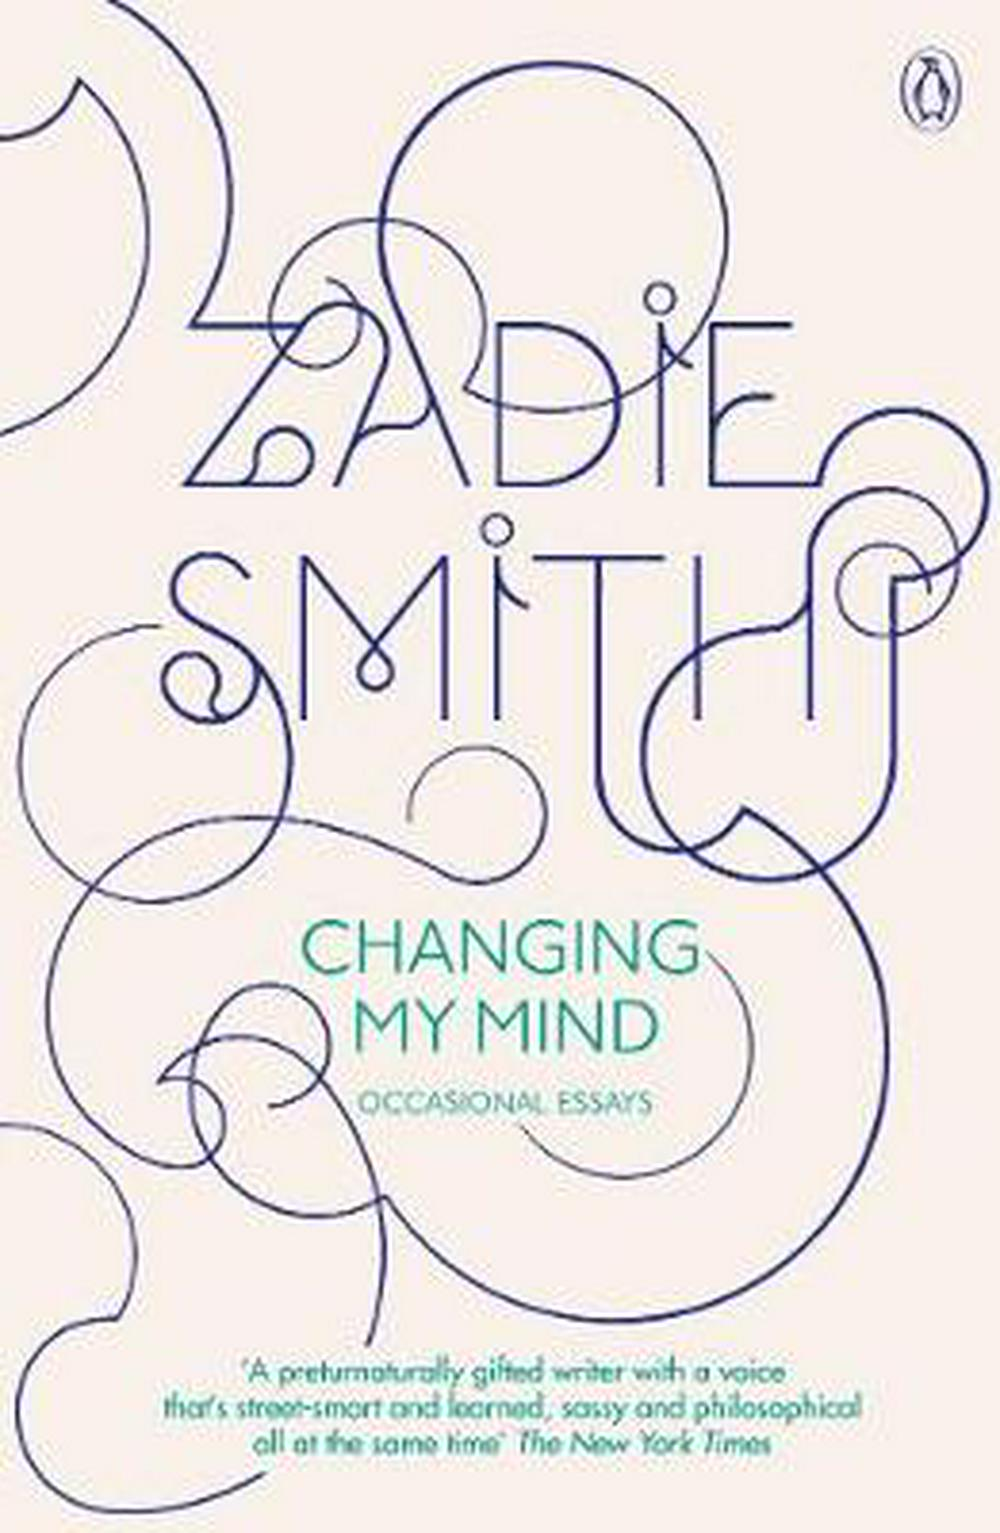 003 Essay Example Changing My Mind Occasional Essays Striking Pdf By Zadie Smith Full